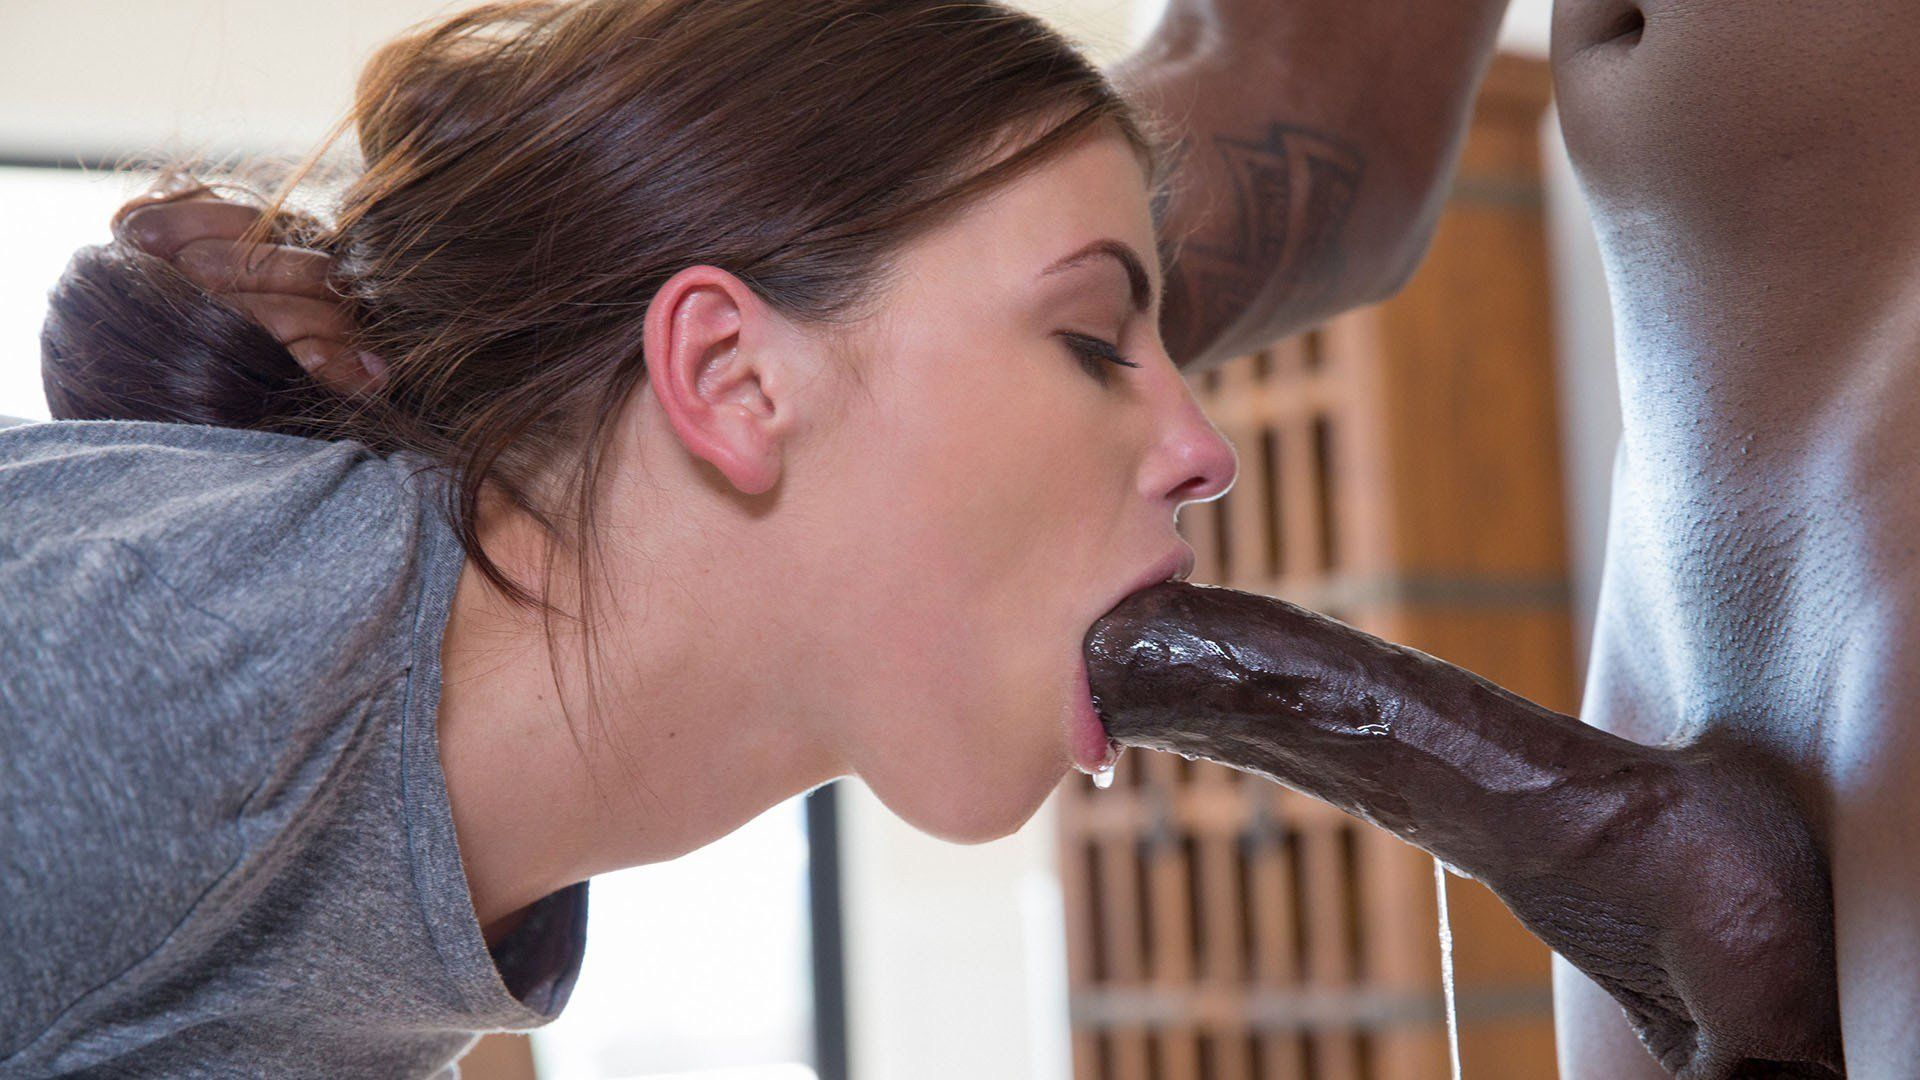 Free throat gagging porn sites top porn images